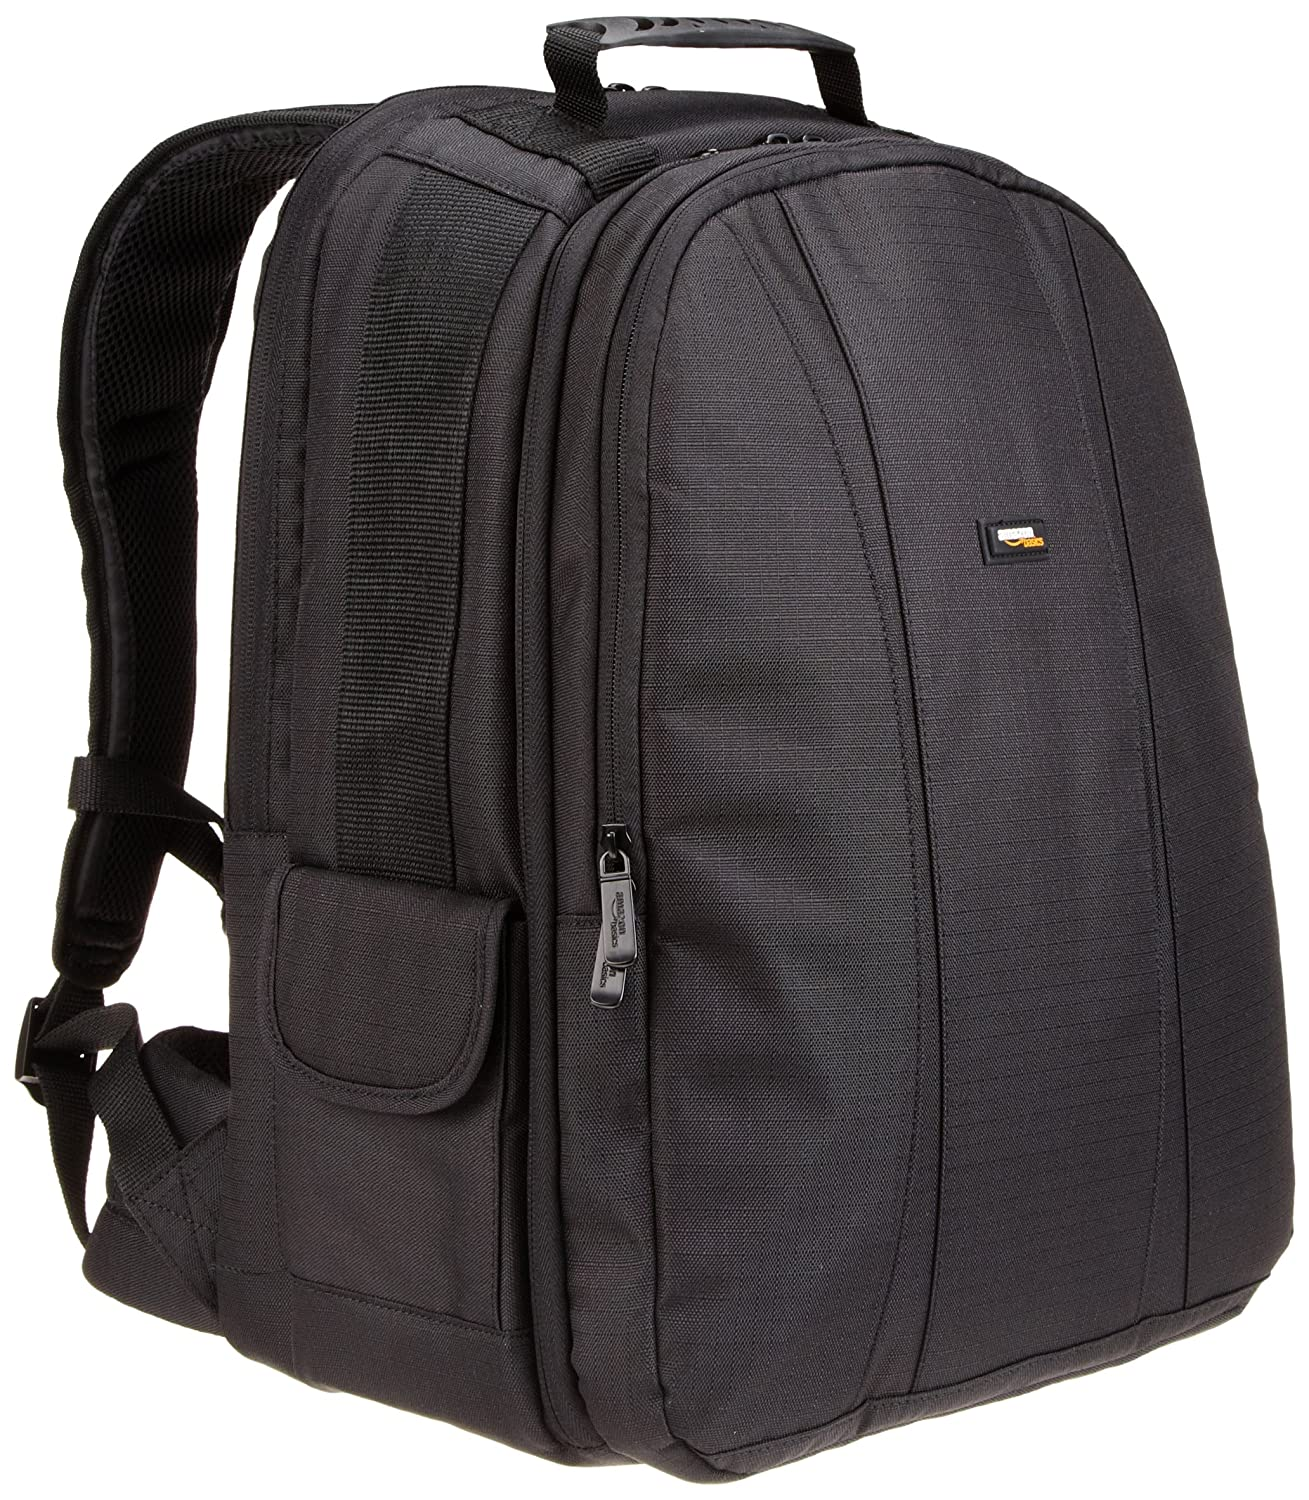 AmazonBasics DSLR and Laptop Backpack - Orange interior SM1303003B